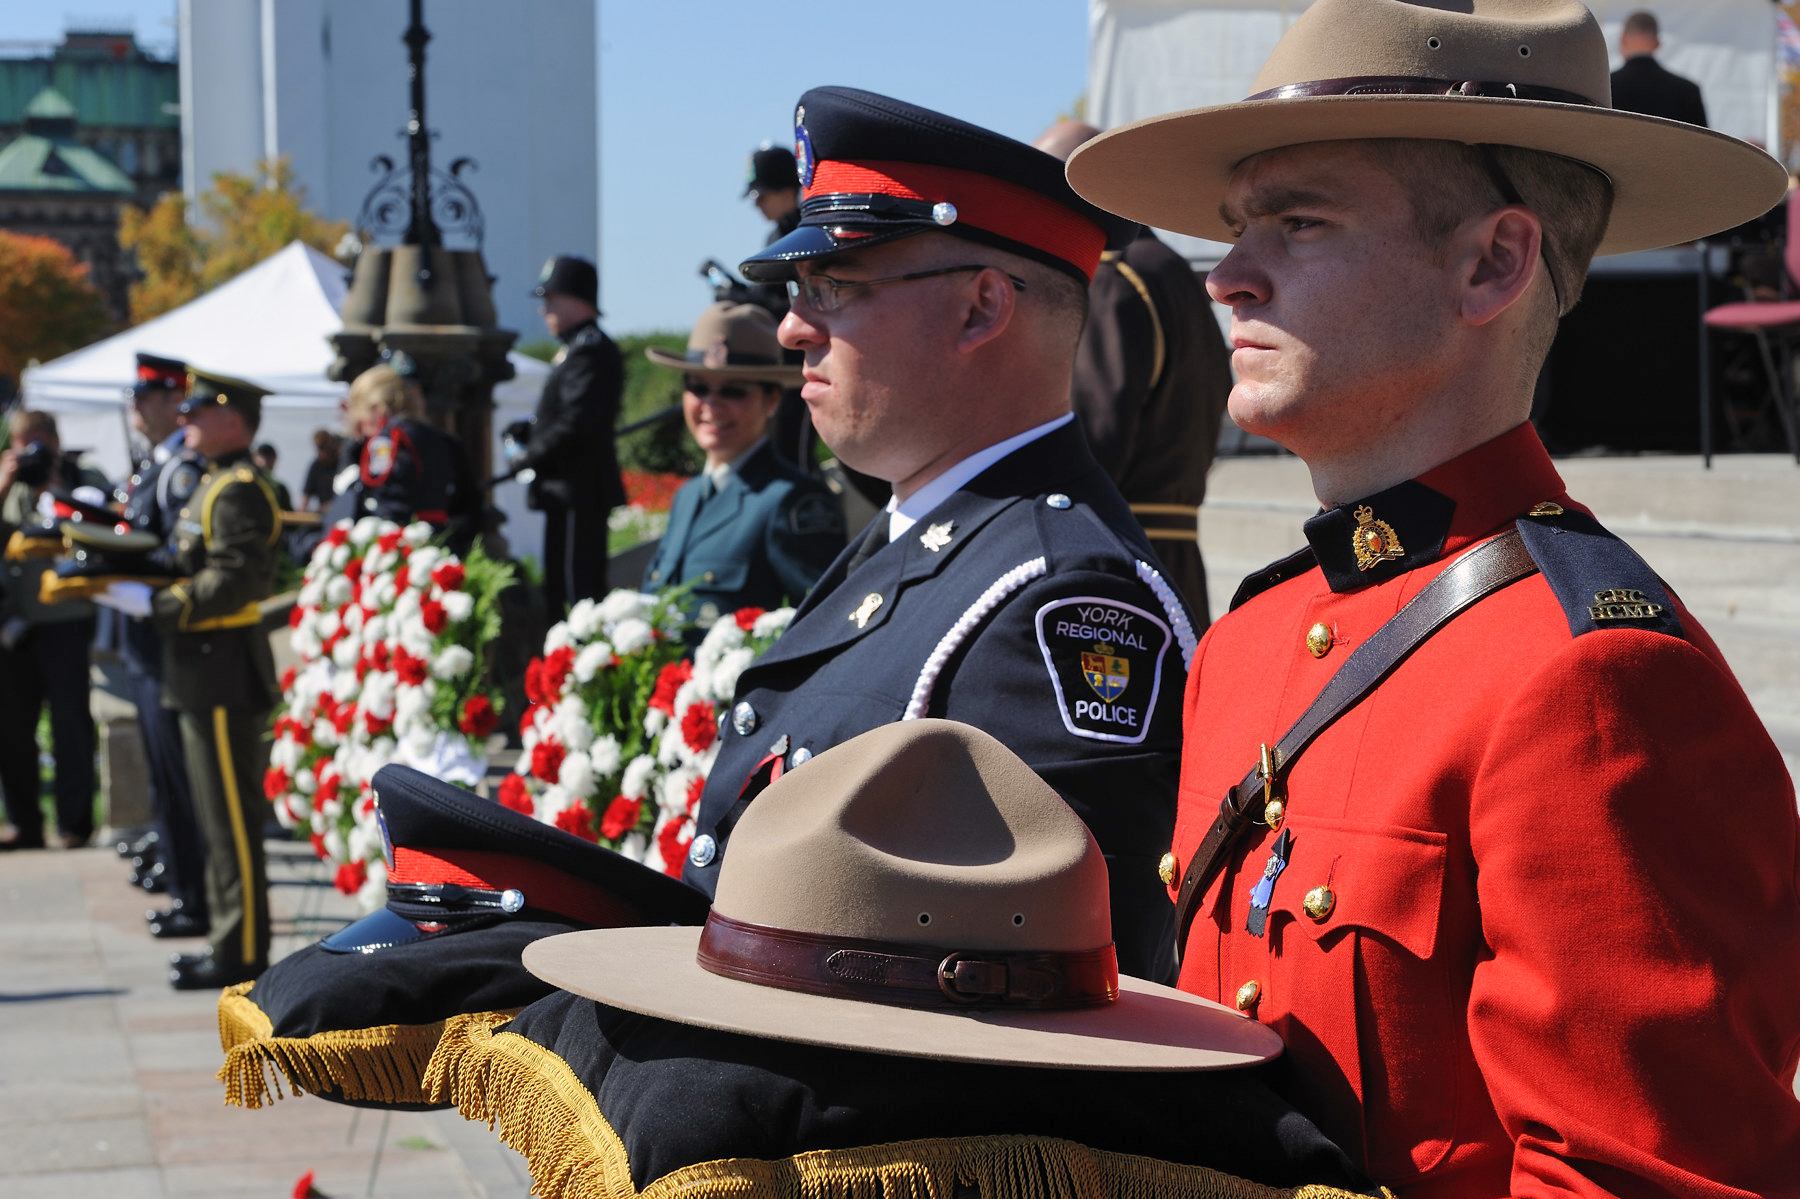 On September 24, 1998, the Government of Canada officially proclaimed the last Sunday of every September as the annual Canadian Police and Peace Officers' National Memorial Day.